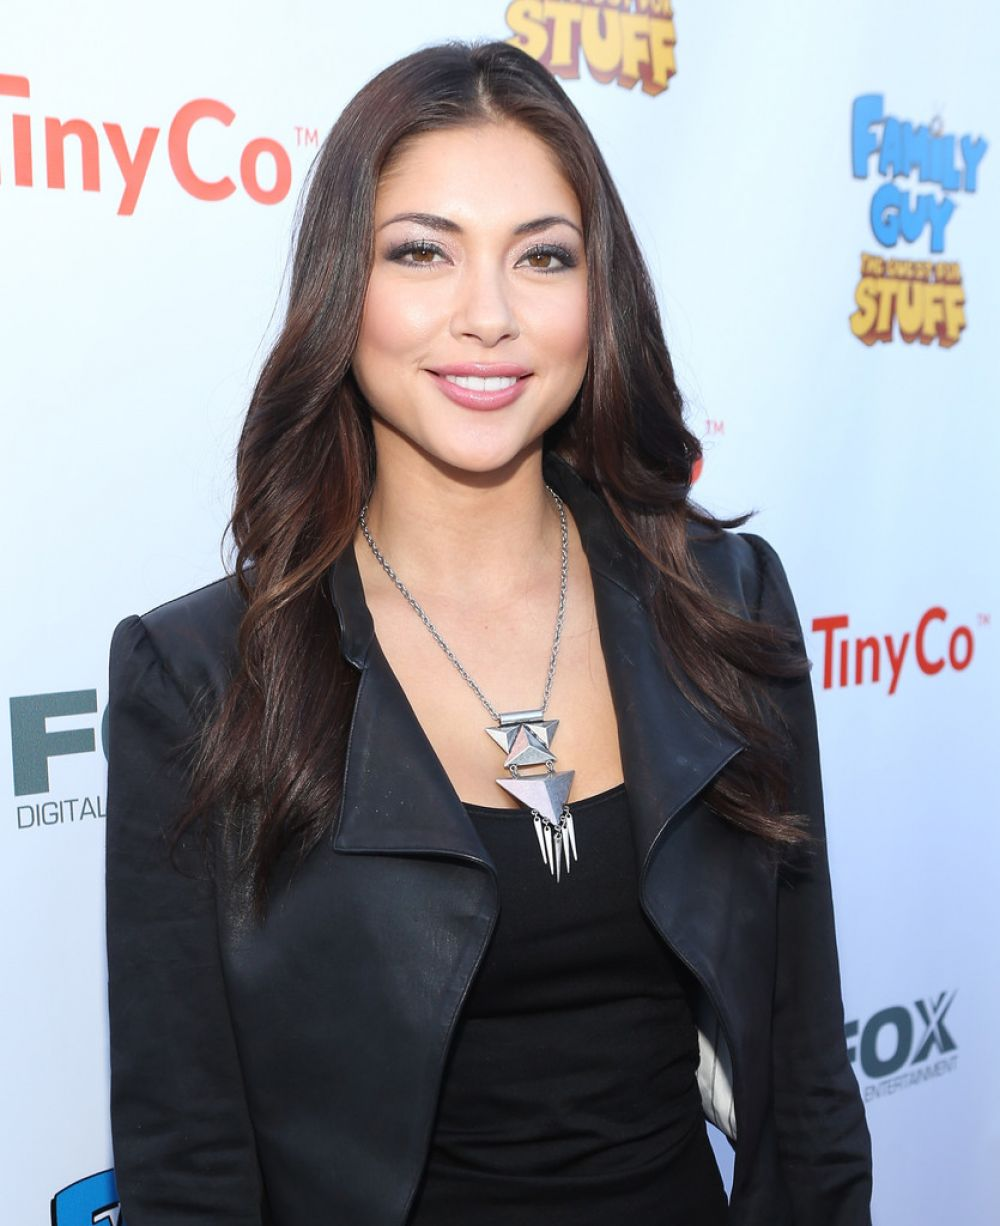 ARIANNY CELESTE at Family Guy: The Quest for Stuff Premiere Party in